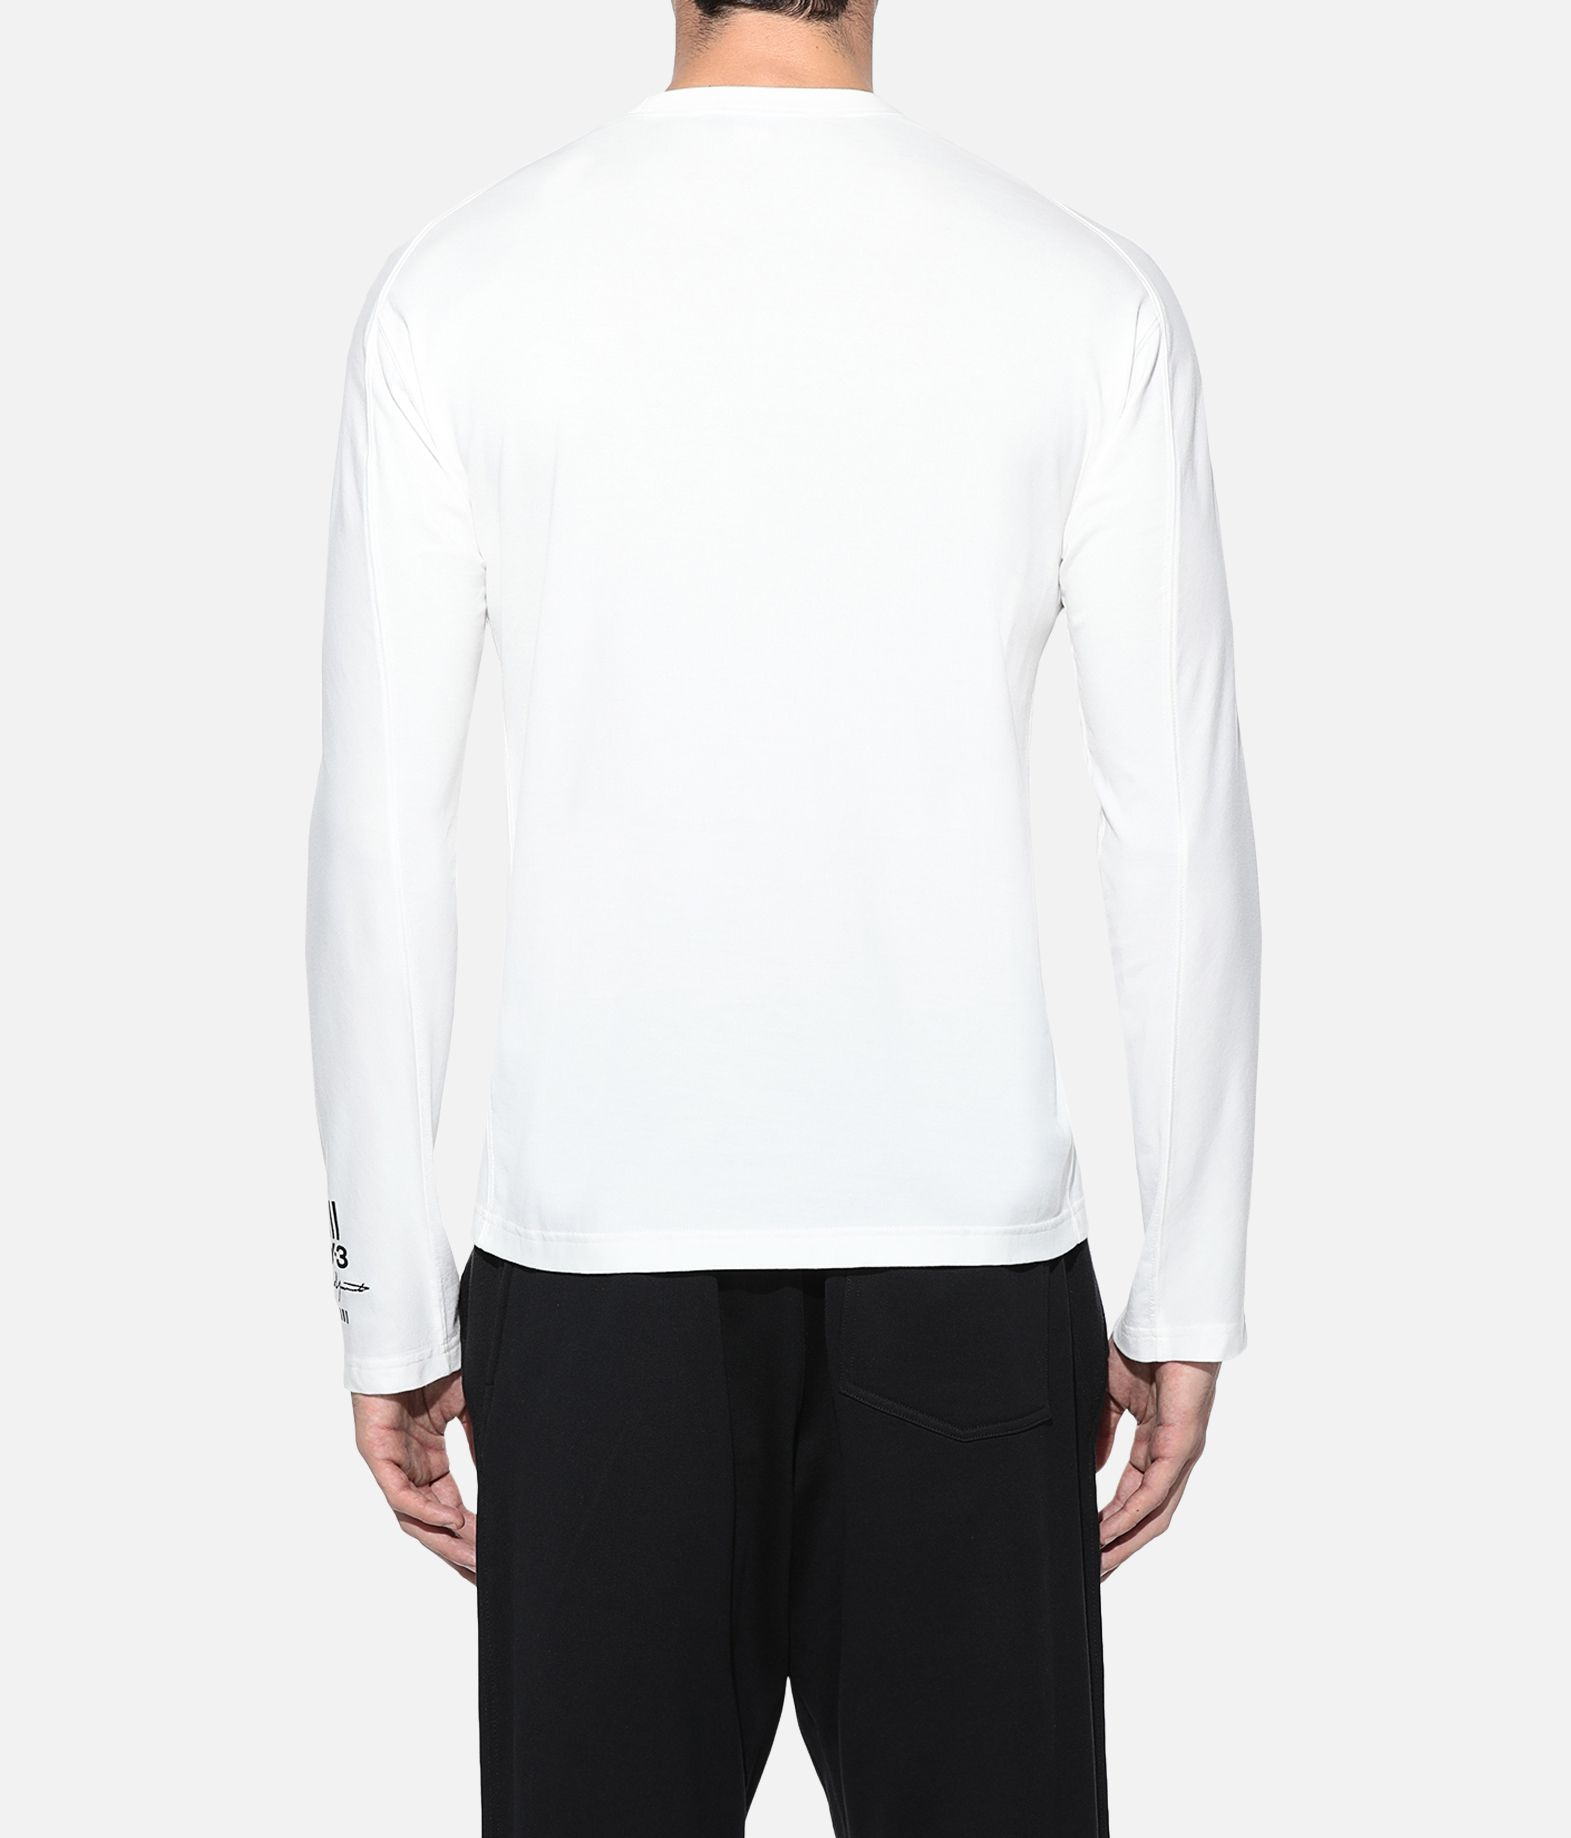 Y-3 Y-3 Classic Tee T-shirt maniche lunghe Uomo d